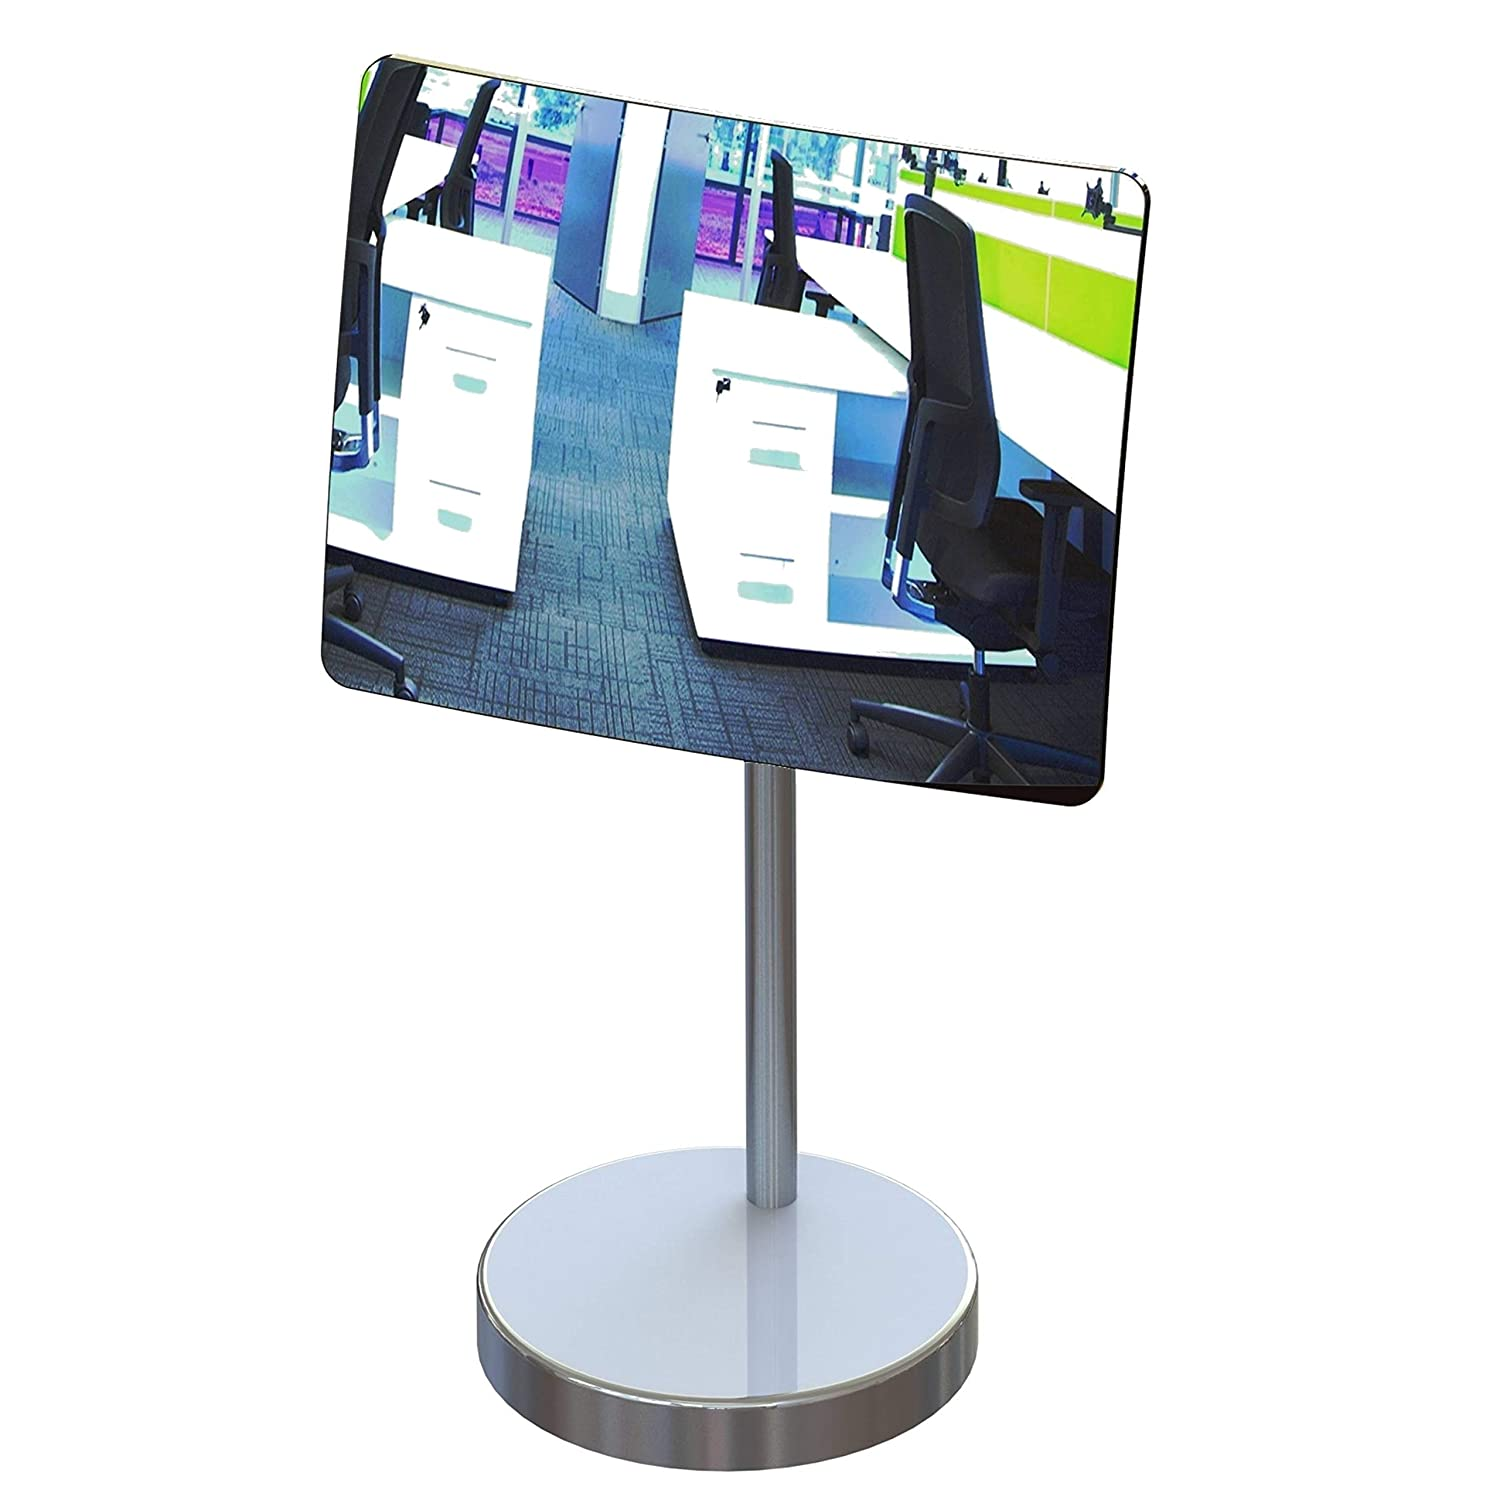 Desk and Cubicle Mirror to See Behind You, Silver Stand with Detachable Wide Angle Real Glass Mirror, Small & Discrete, Beautiful Design, Perfect Curvature for an exceptionally Clear View